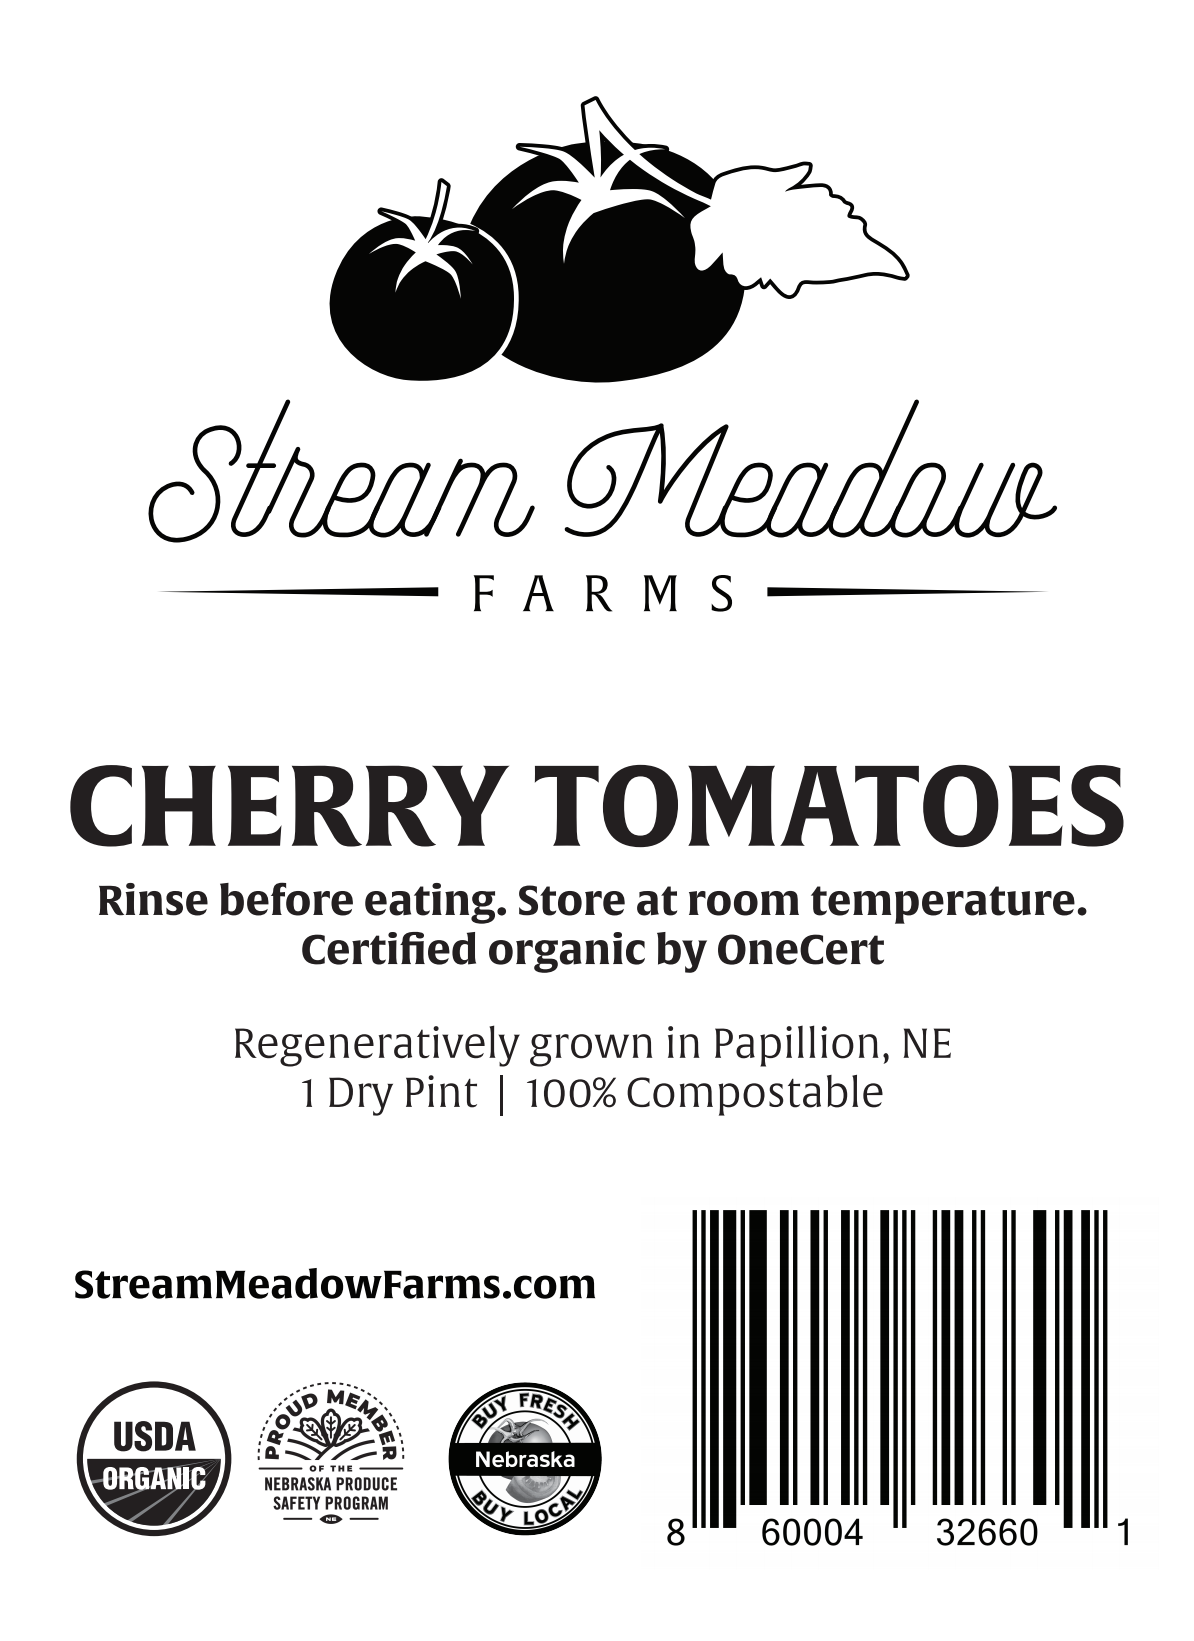 Artwork for Product (Tomato) Stamp or Label